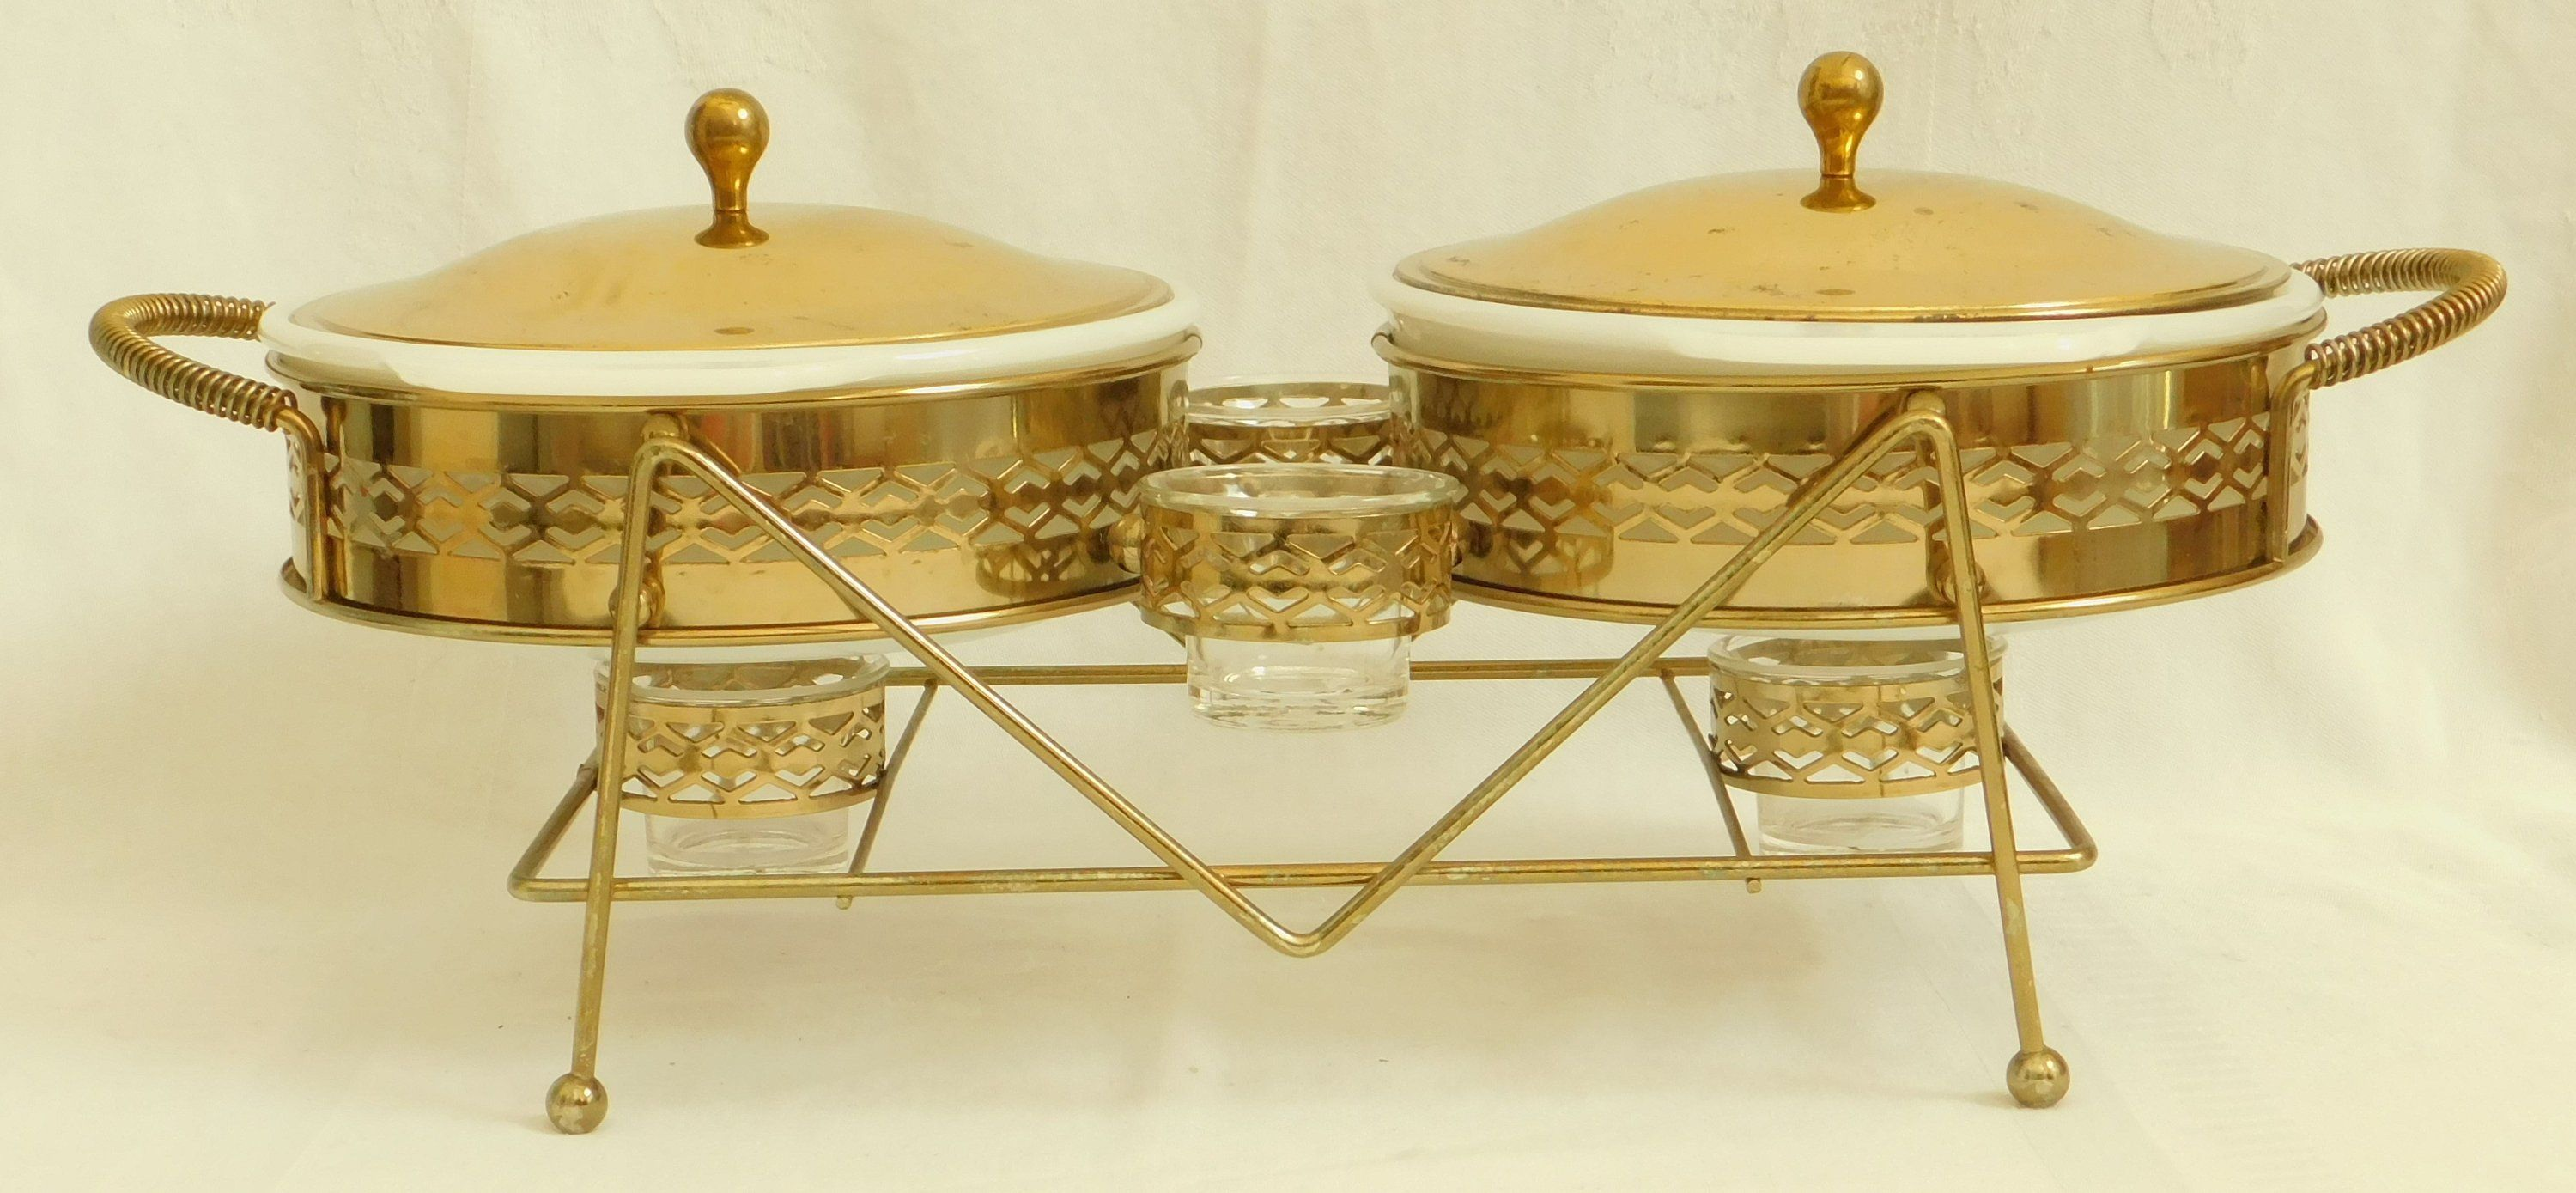 Rare Vintage Fire King 2 Round Casserole Candle Warmer Set 4 Candle Holder Ornate Brass Finished Dish Carrier Lid Candle Warmer Glass Dishes Keep Food Warm